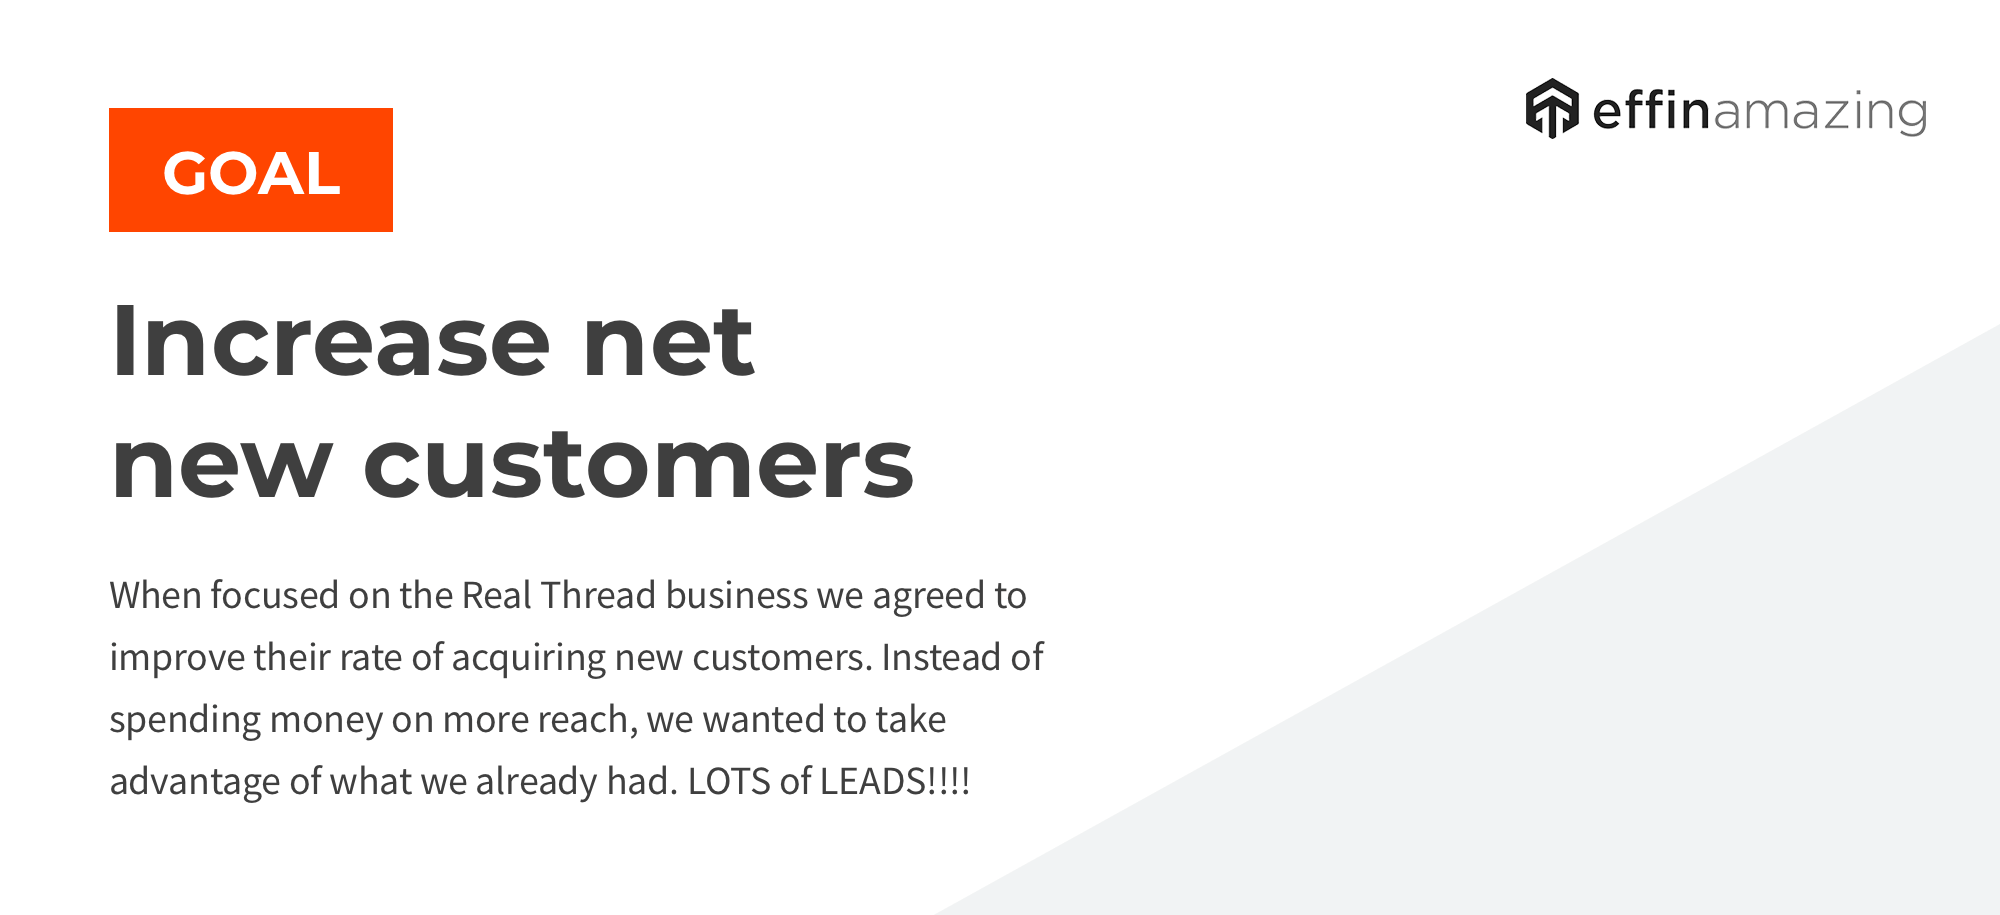 goal was to increase net new customers